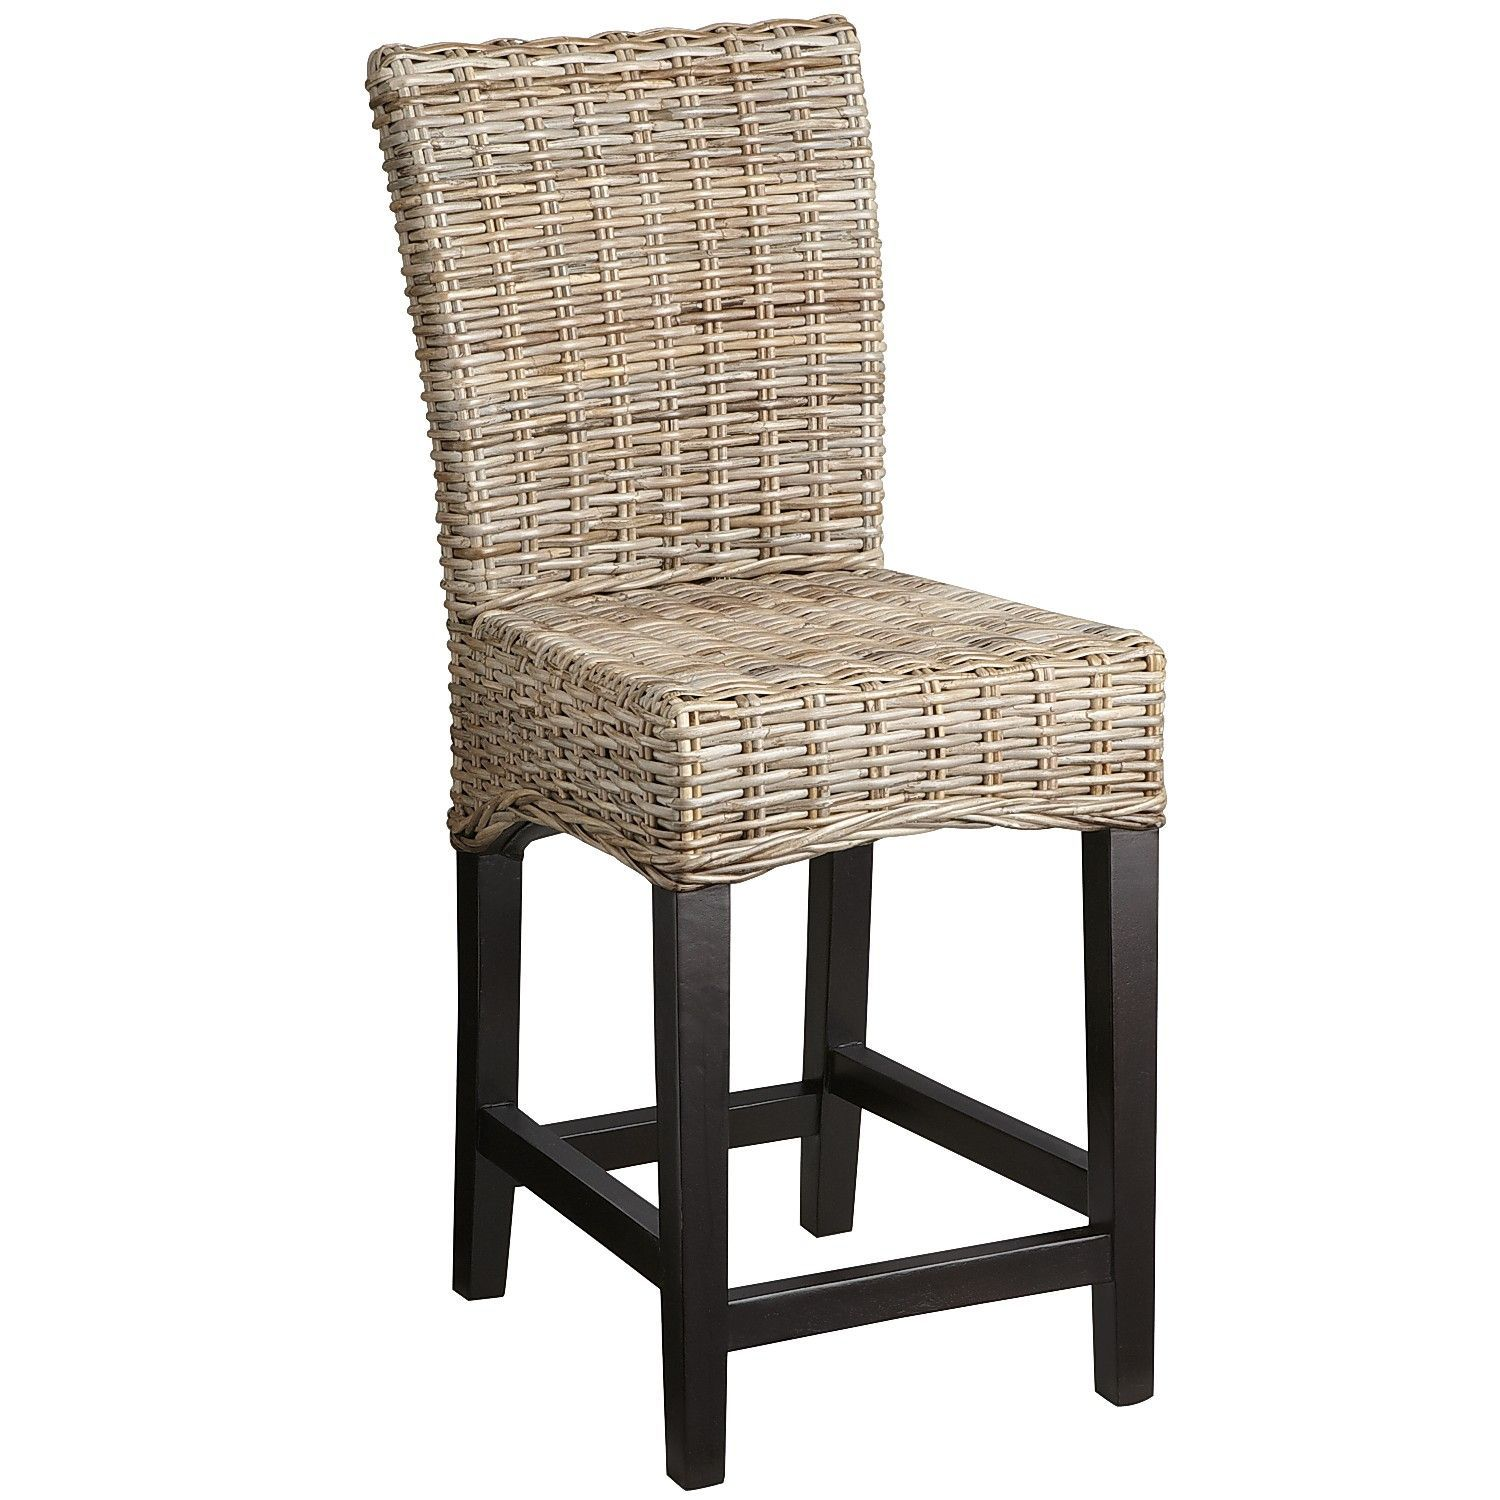 Kubu Bar Amp Counter Stool M Amp J Townhouse Ideas Wicker